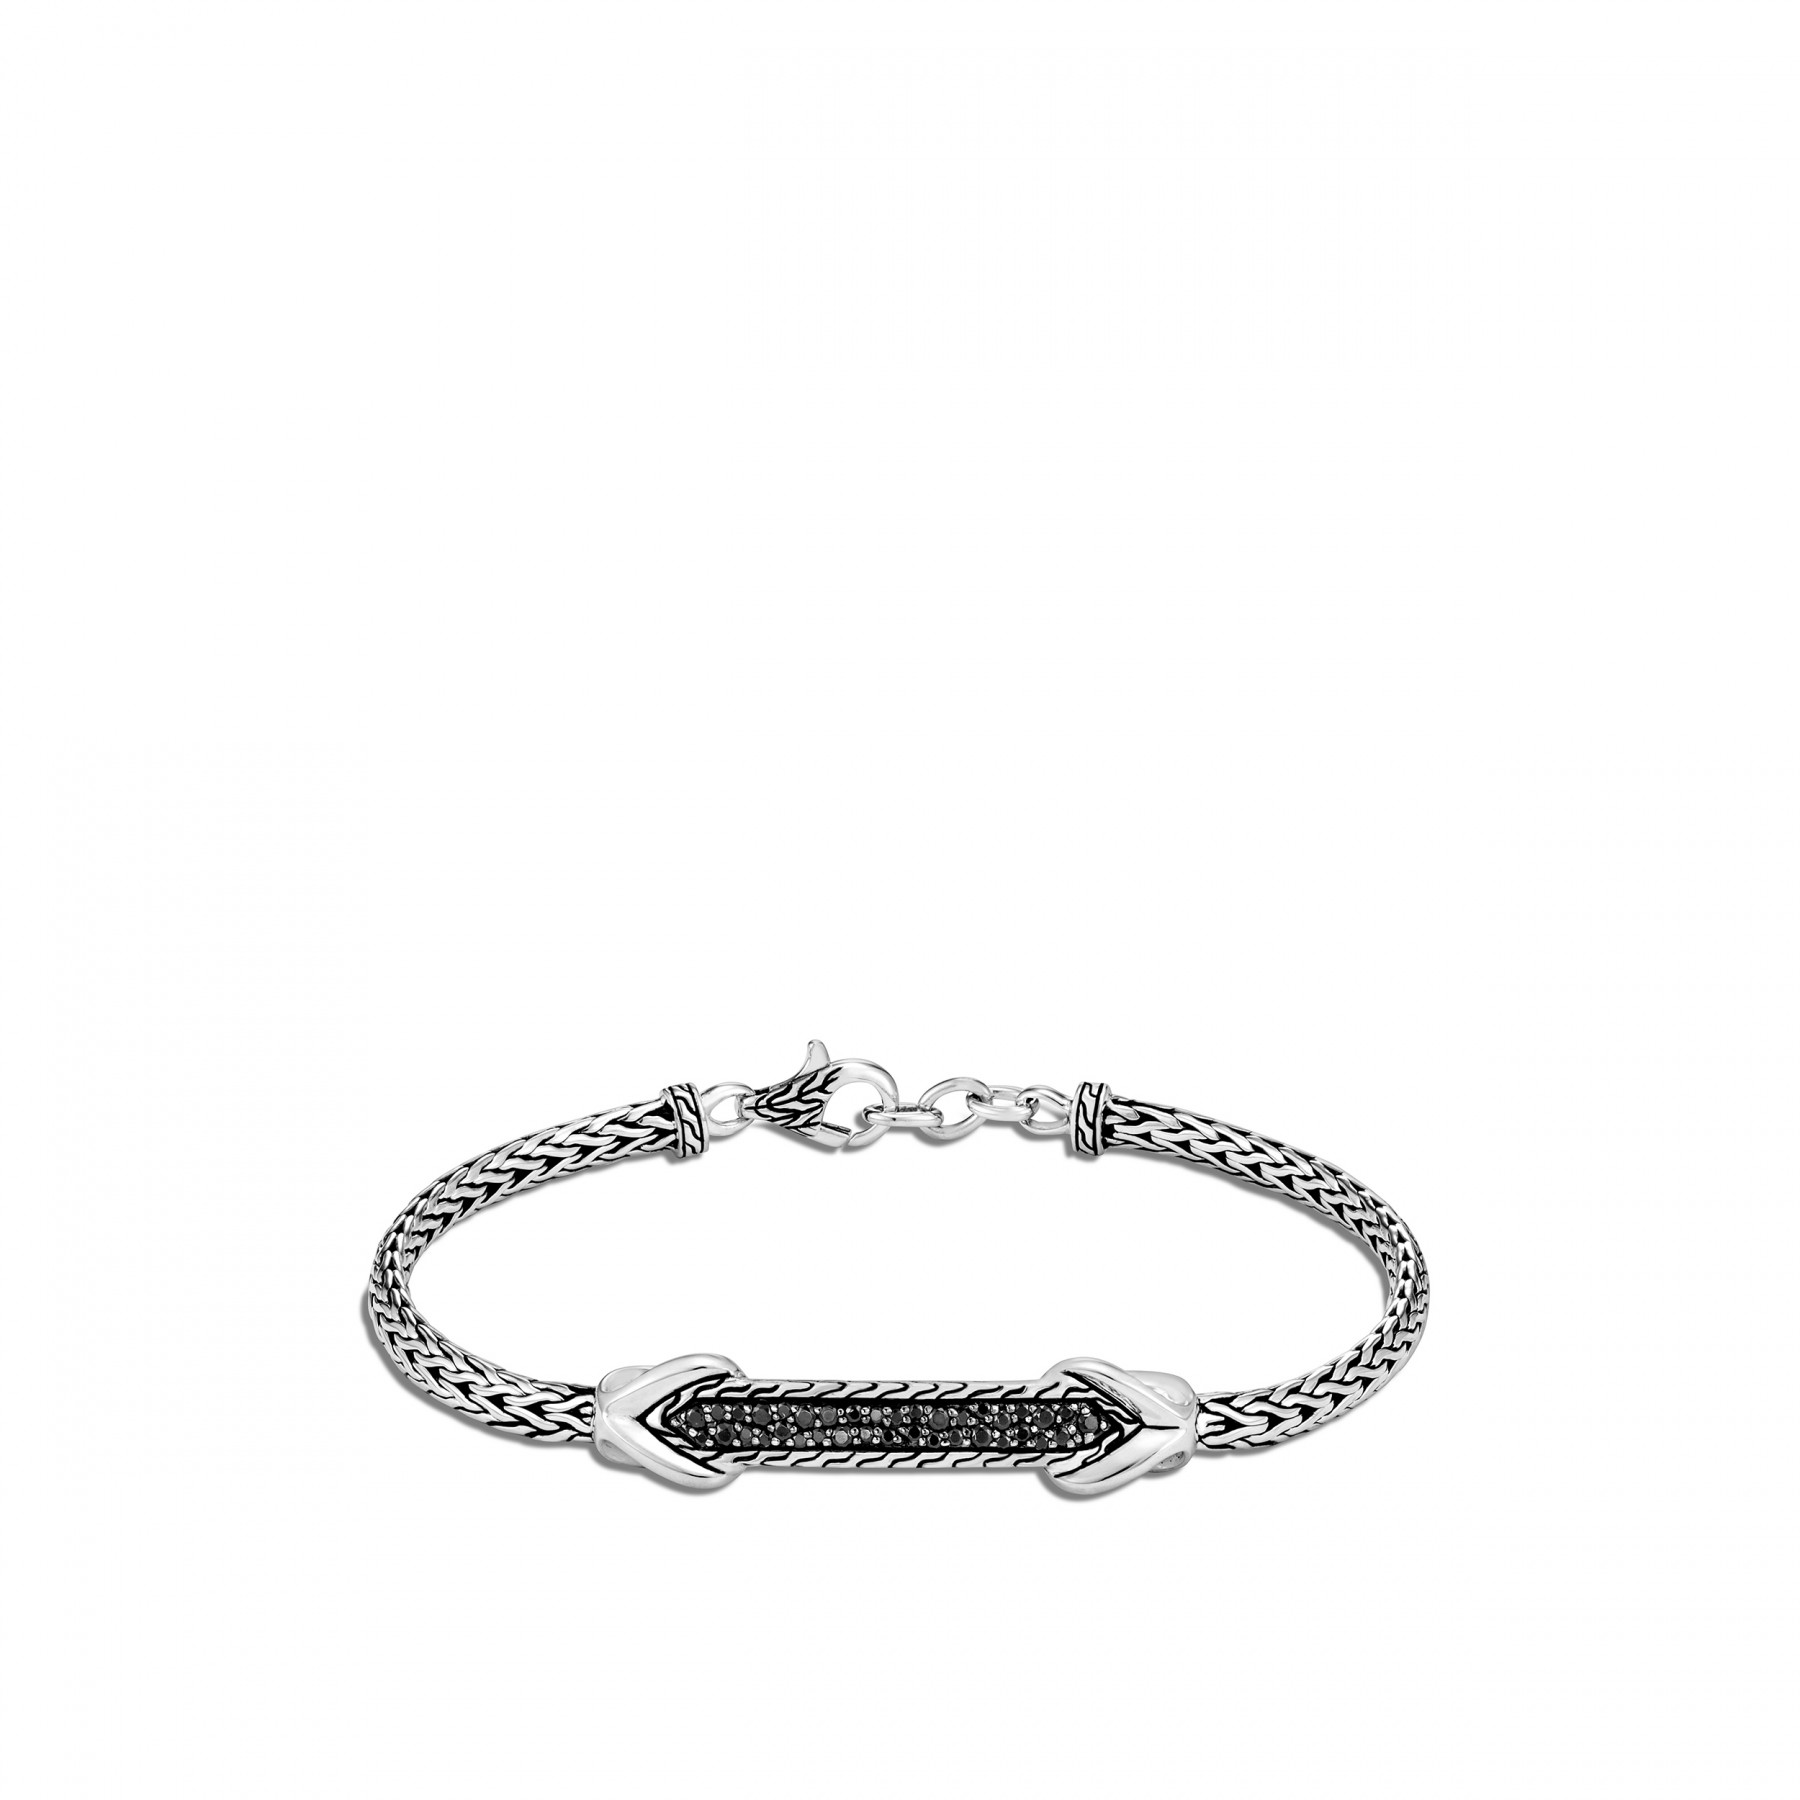 John Hardy Asli Classic Chain Silver and Black Bracelet –3.5mm front view